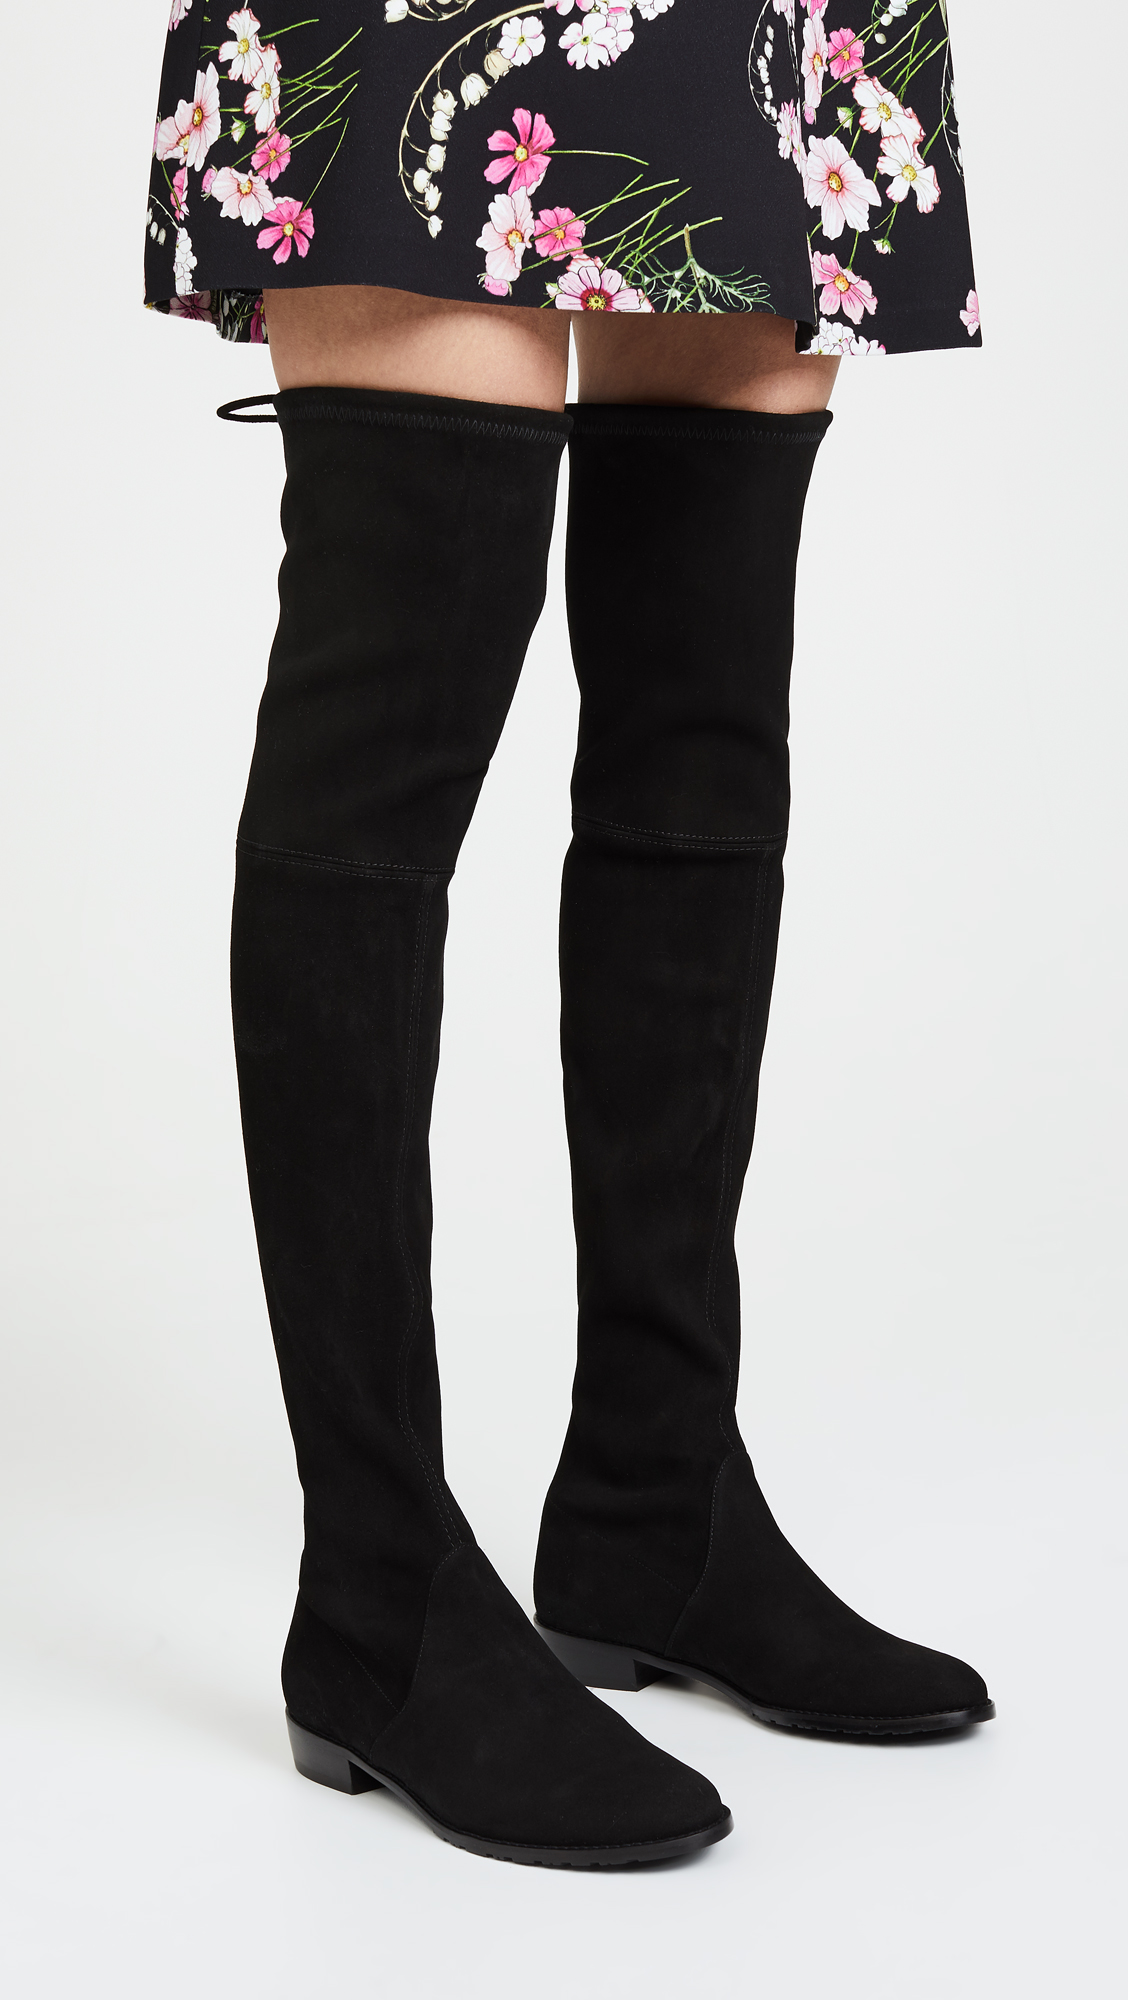 Stuart Weitzman Lowland Over the Knee Boots event of the season sale